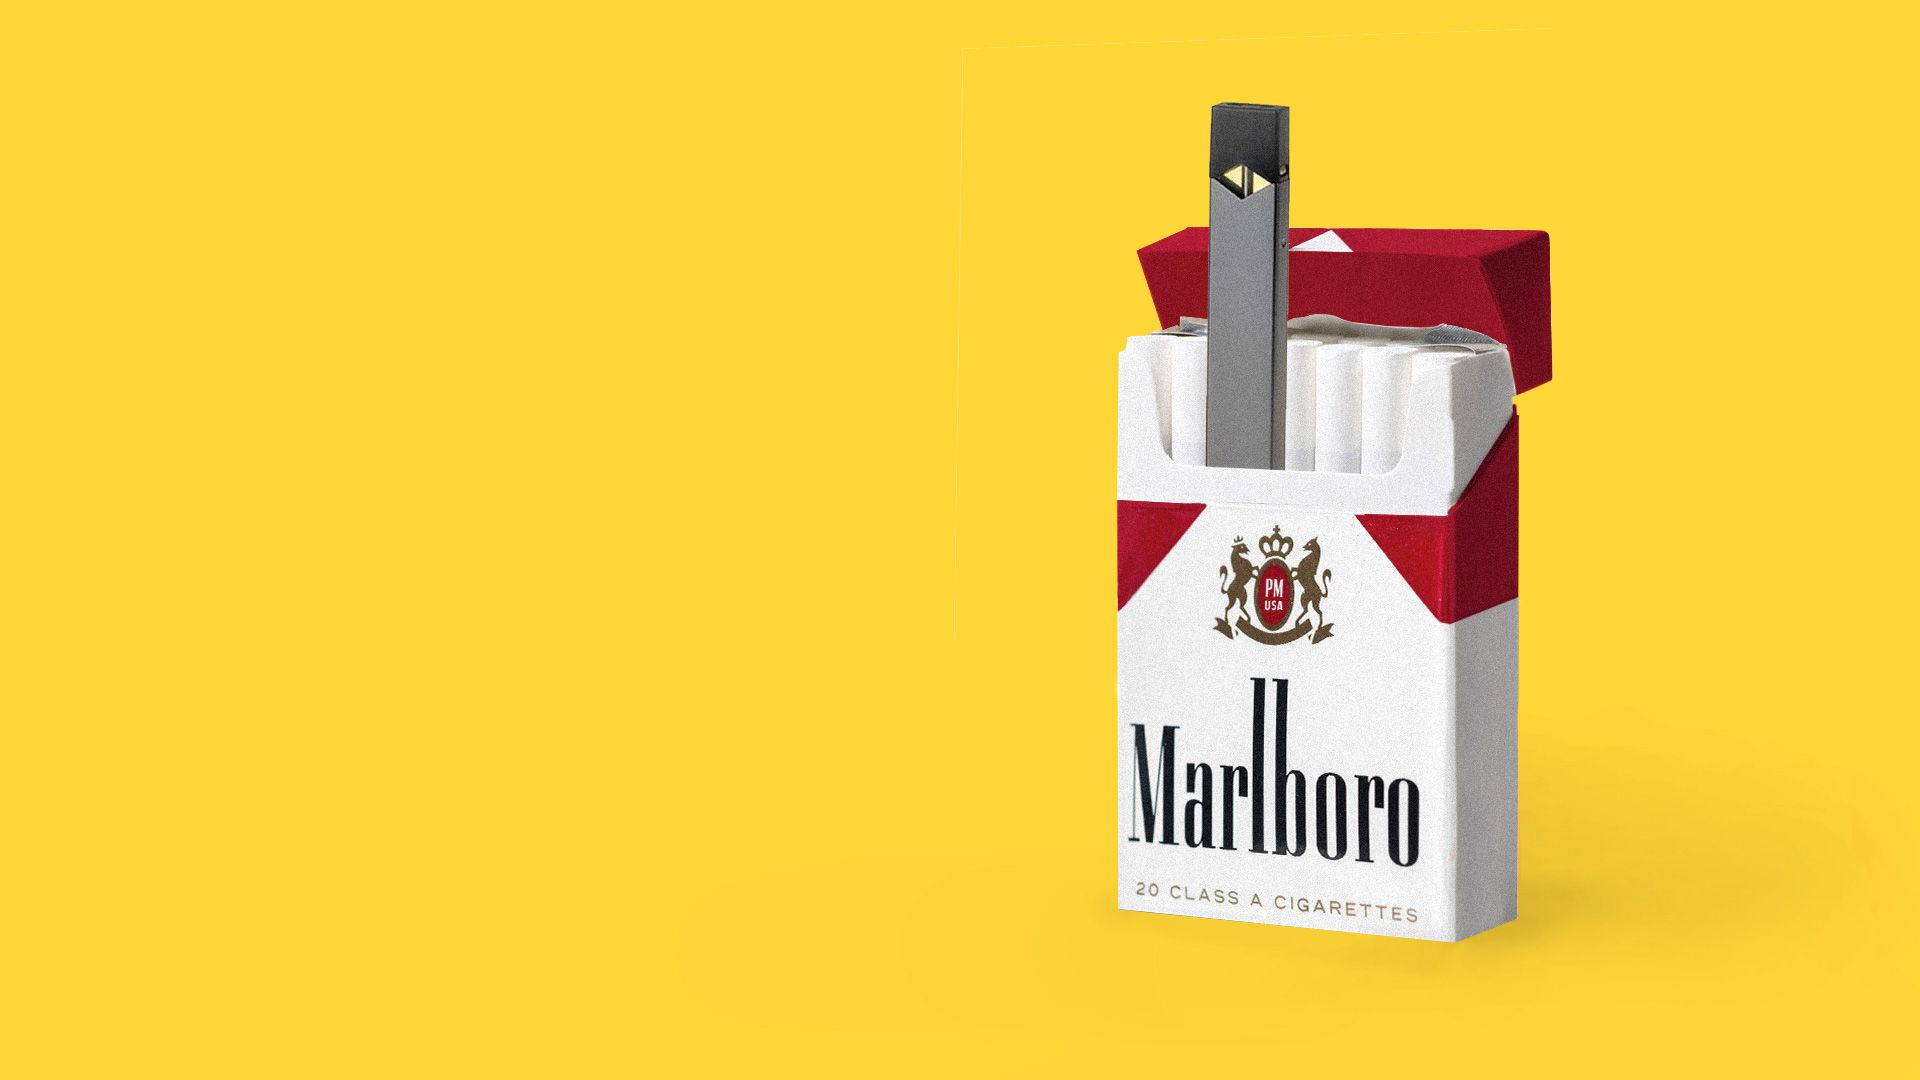 Illustration of Juul vape in a pack of Marlboro cigarettes.